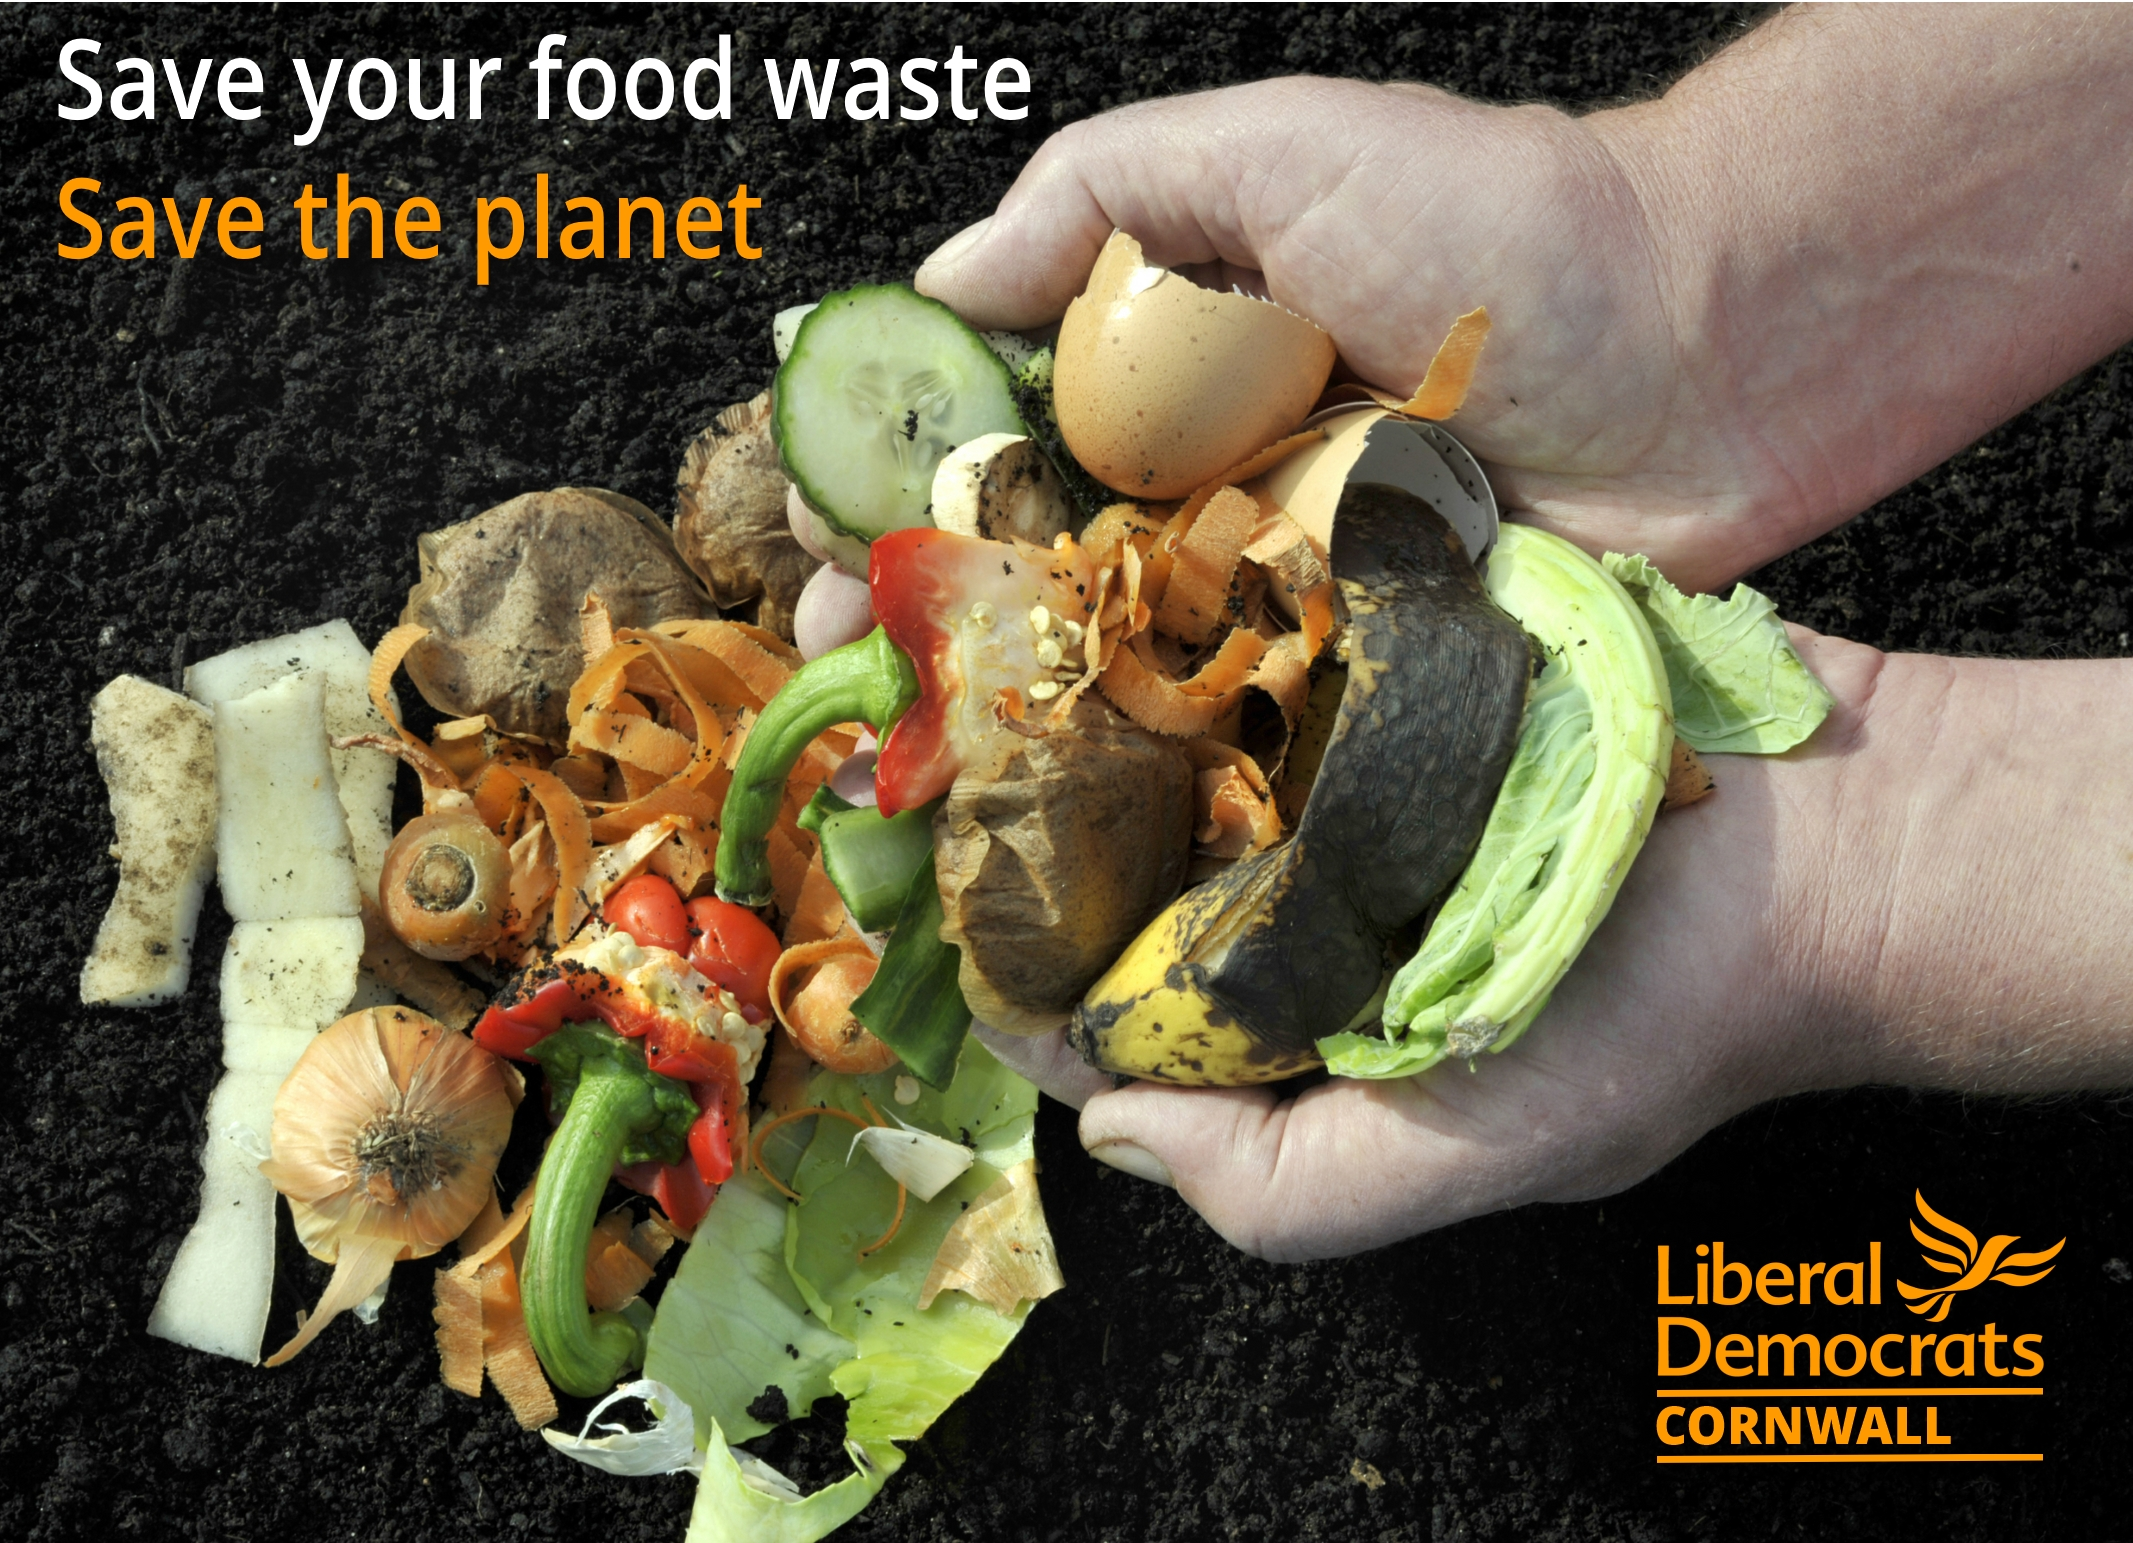 New waste contract will send Cornwall up the recycling league tables - Lib Dems